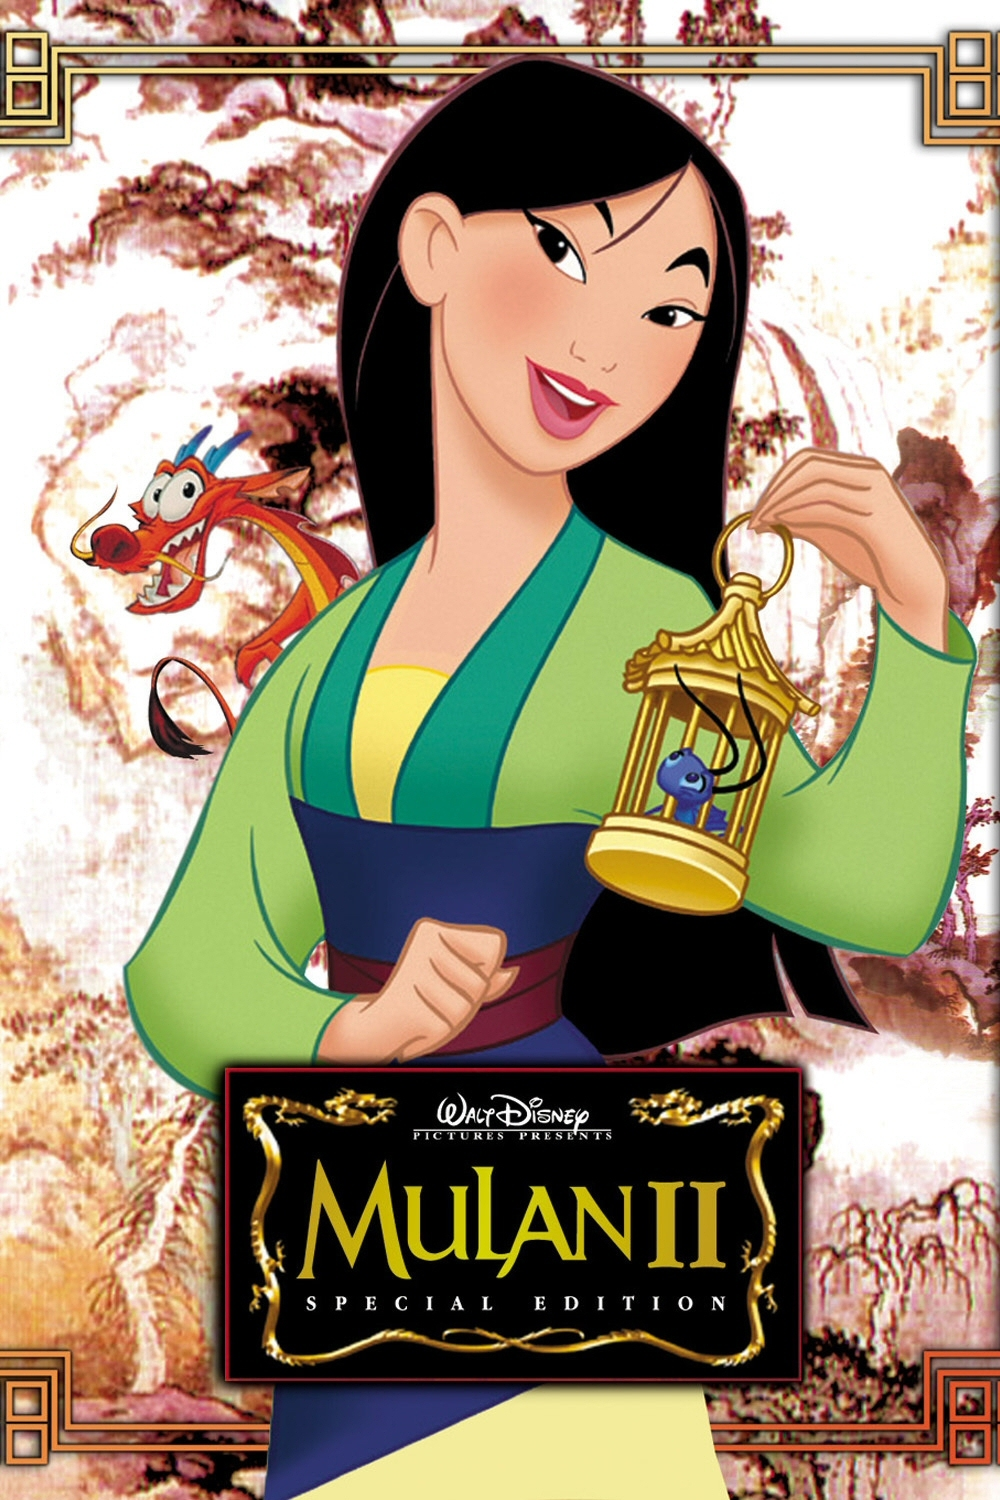 Mulan II Backgrounds, Compatible - PC, Mobile, Gadgets| 1000x1500 px